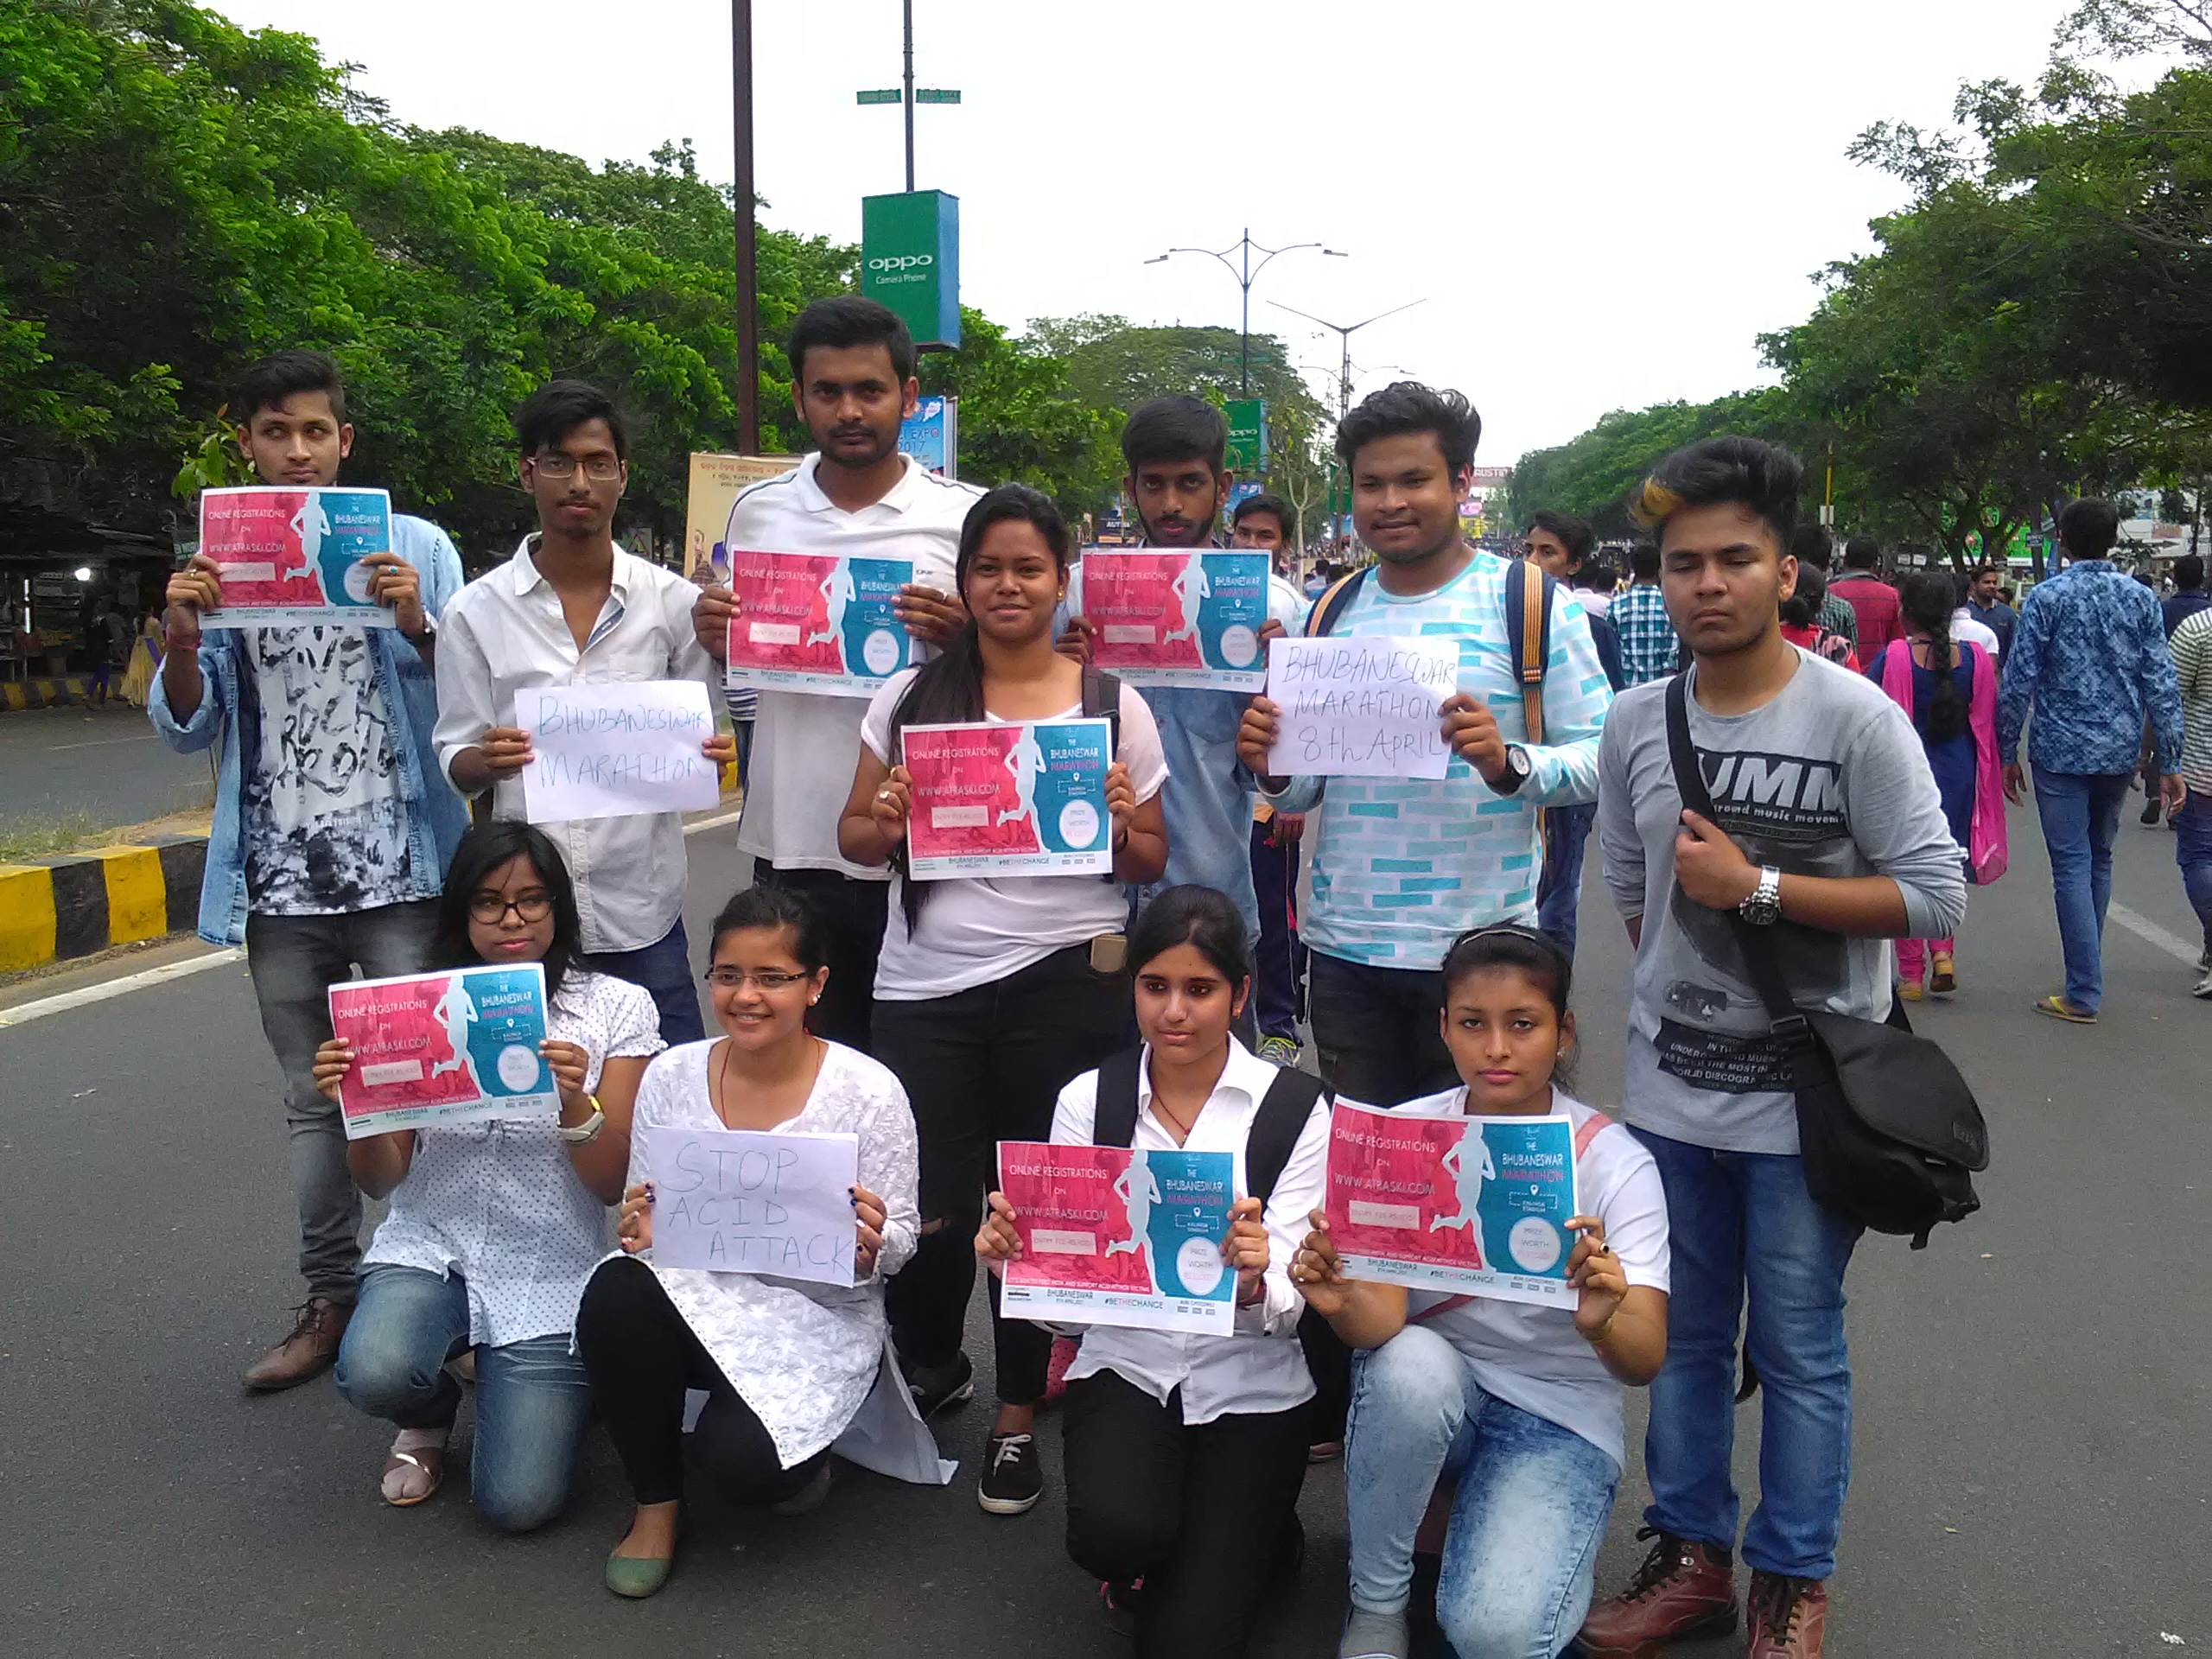 Students of KIIT University creating an awareness on acid attack vicitims